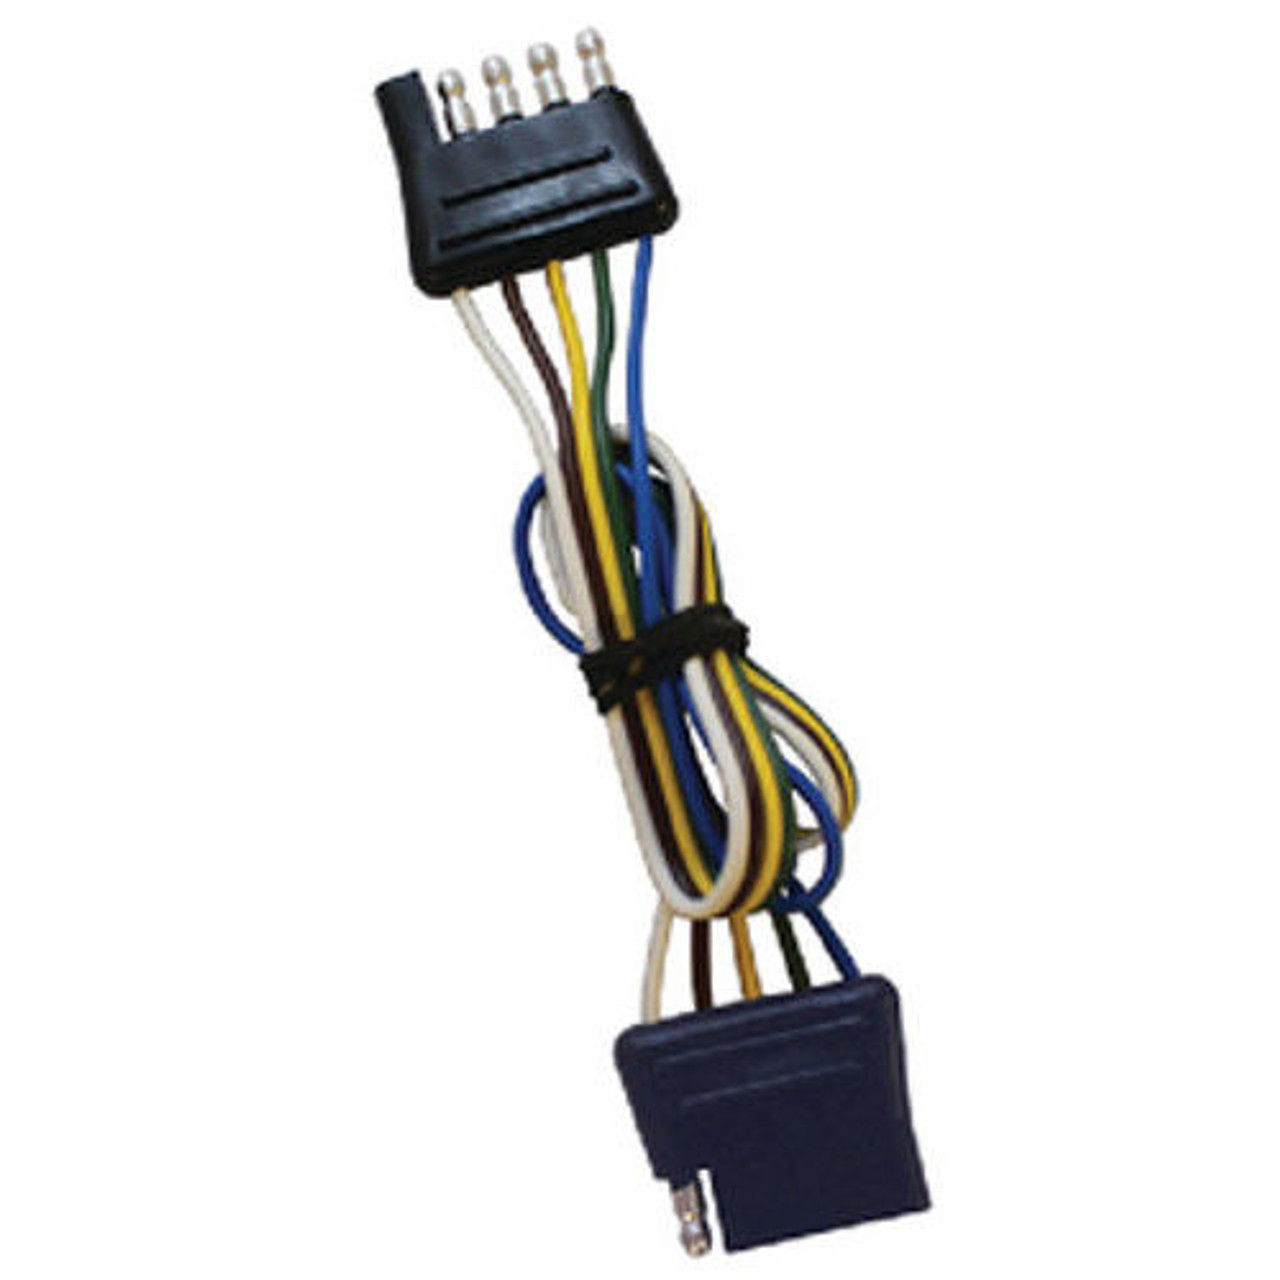 medium resolution of 60 inch long flat 5 way boat trailer wiring harness extension flat extension wire 4 60